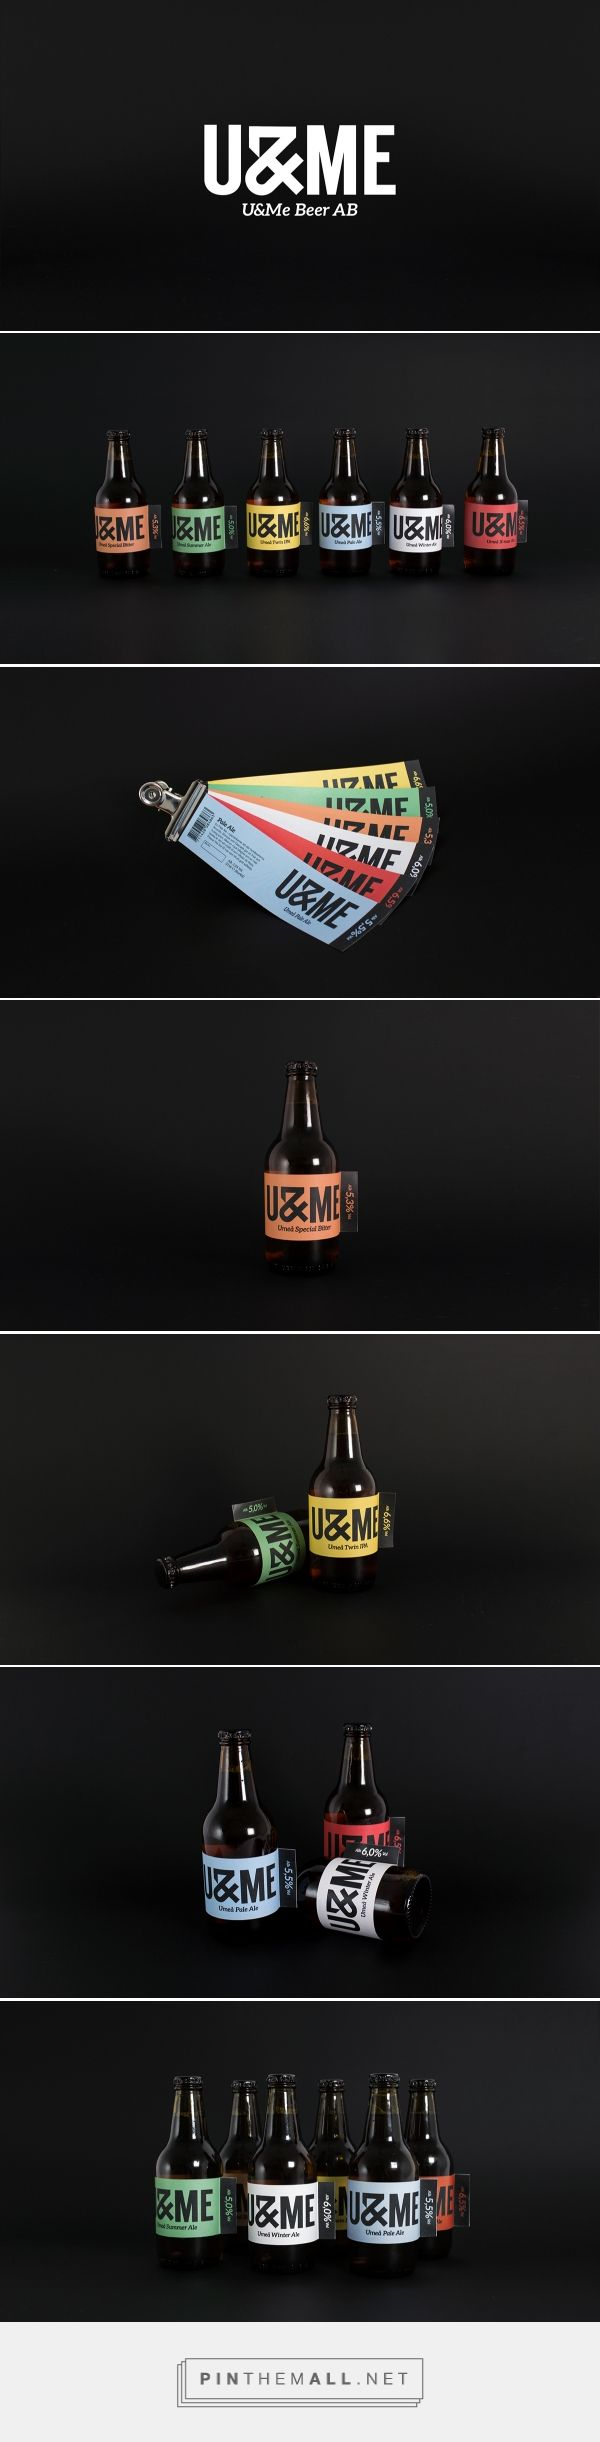 Branding, graphic design and packaging for U&ME BEER on Behance by Kalle Lund Stockholm, Sweden